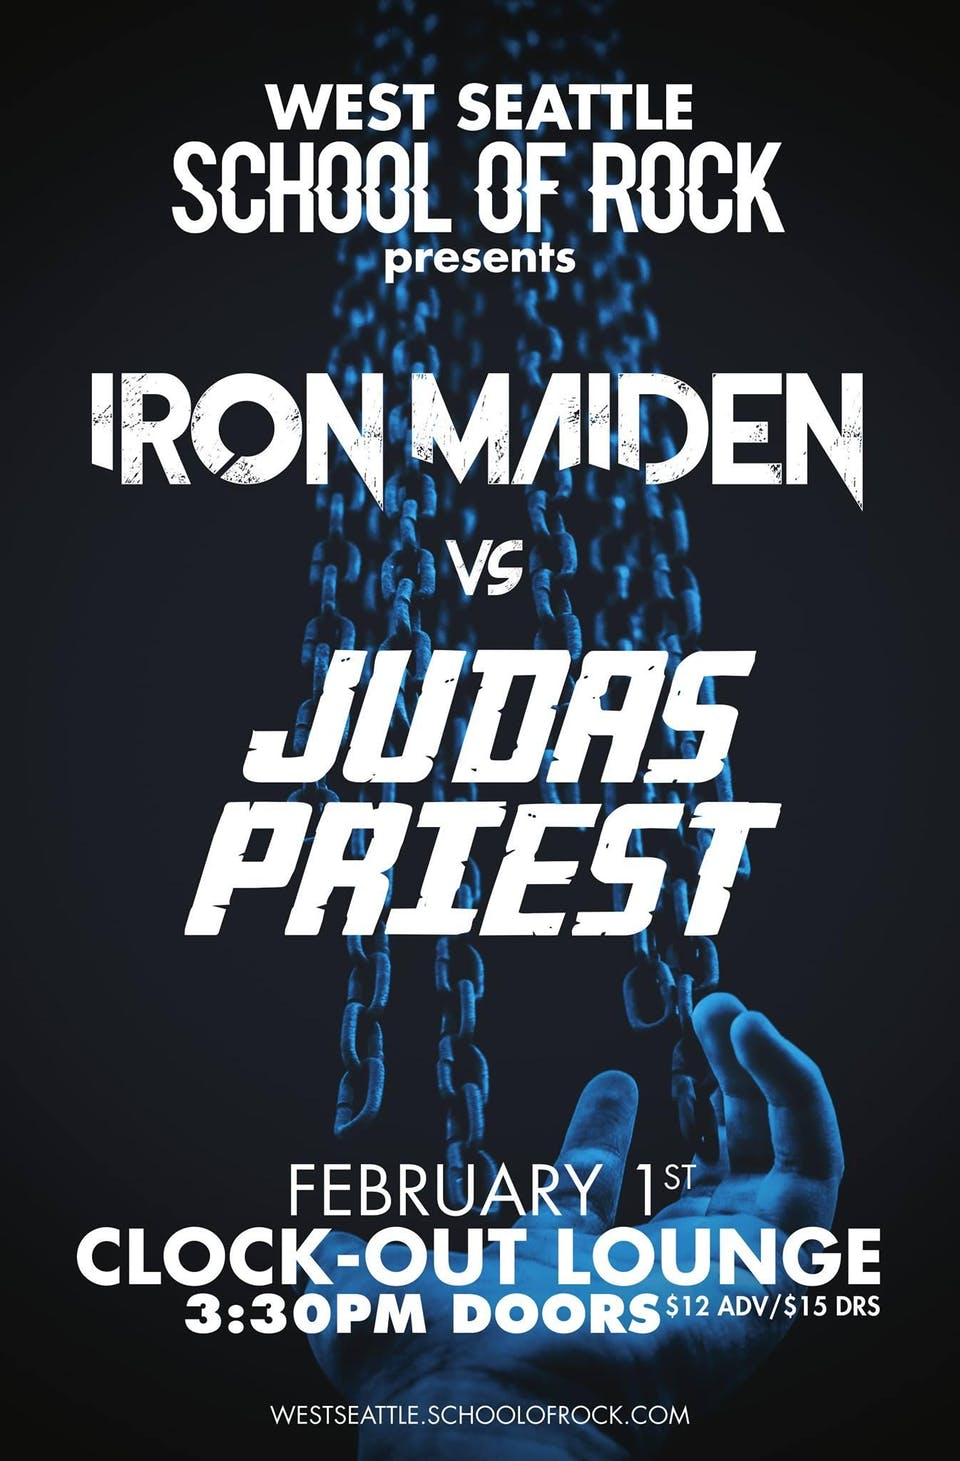 West Seattle School of Rock performs Iron Maiden vs. Judas Priest